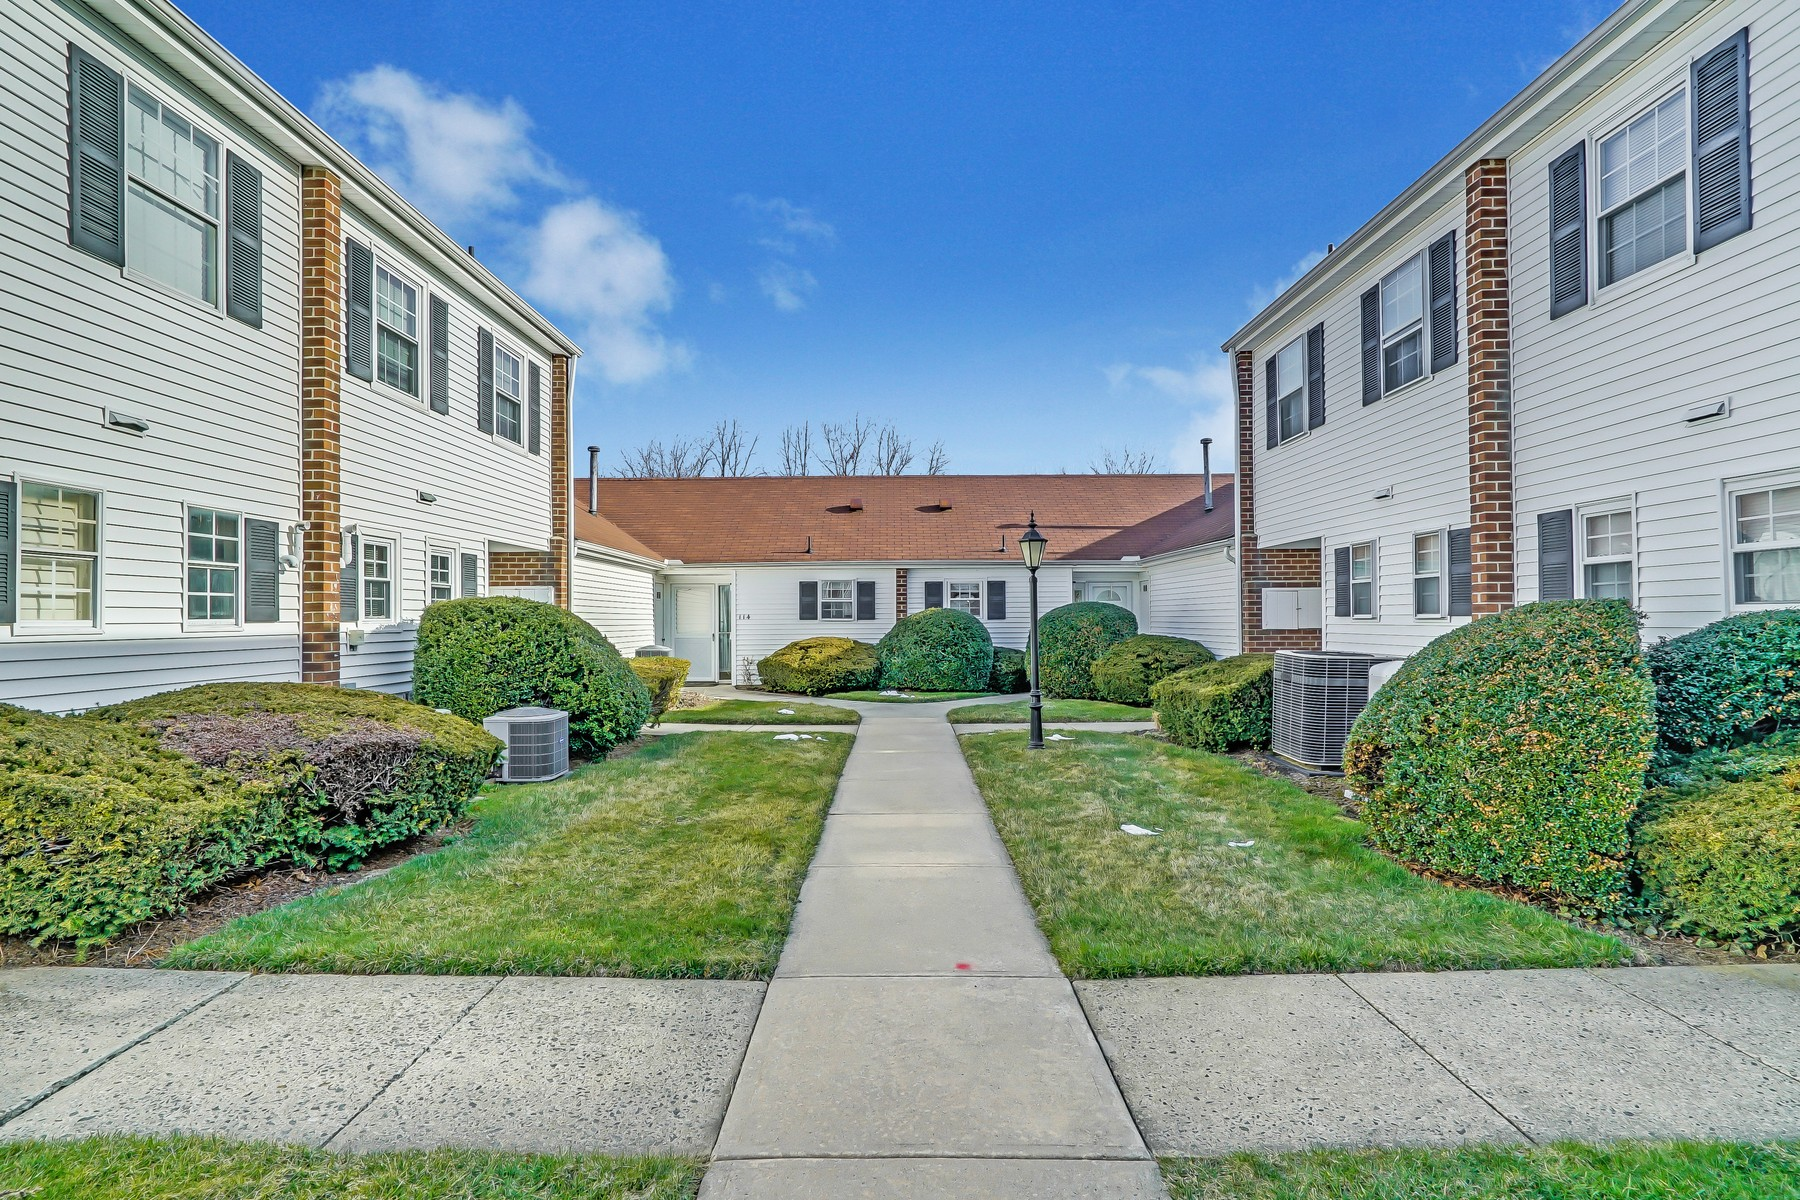 Condominium for Sale at Enjoy the Fairway Mews Lifestyle 112 Walnut Dr, Spring Lake Heights, New Jersey, 07762 United States